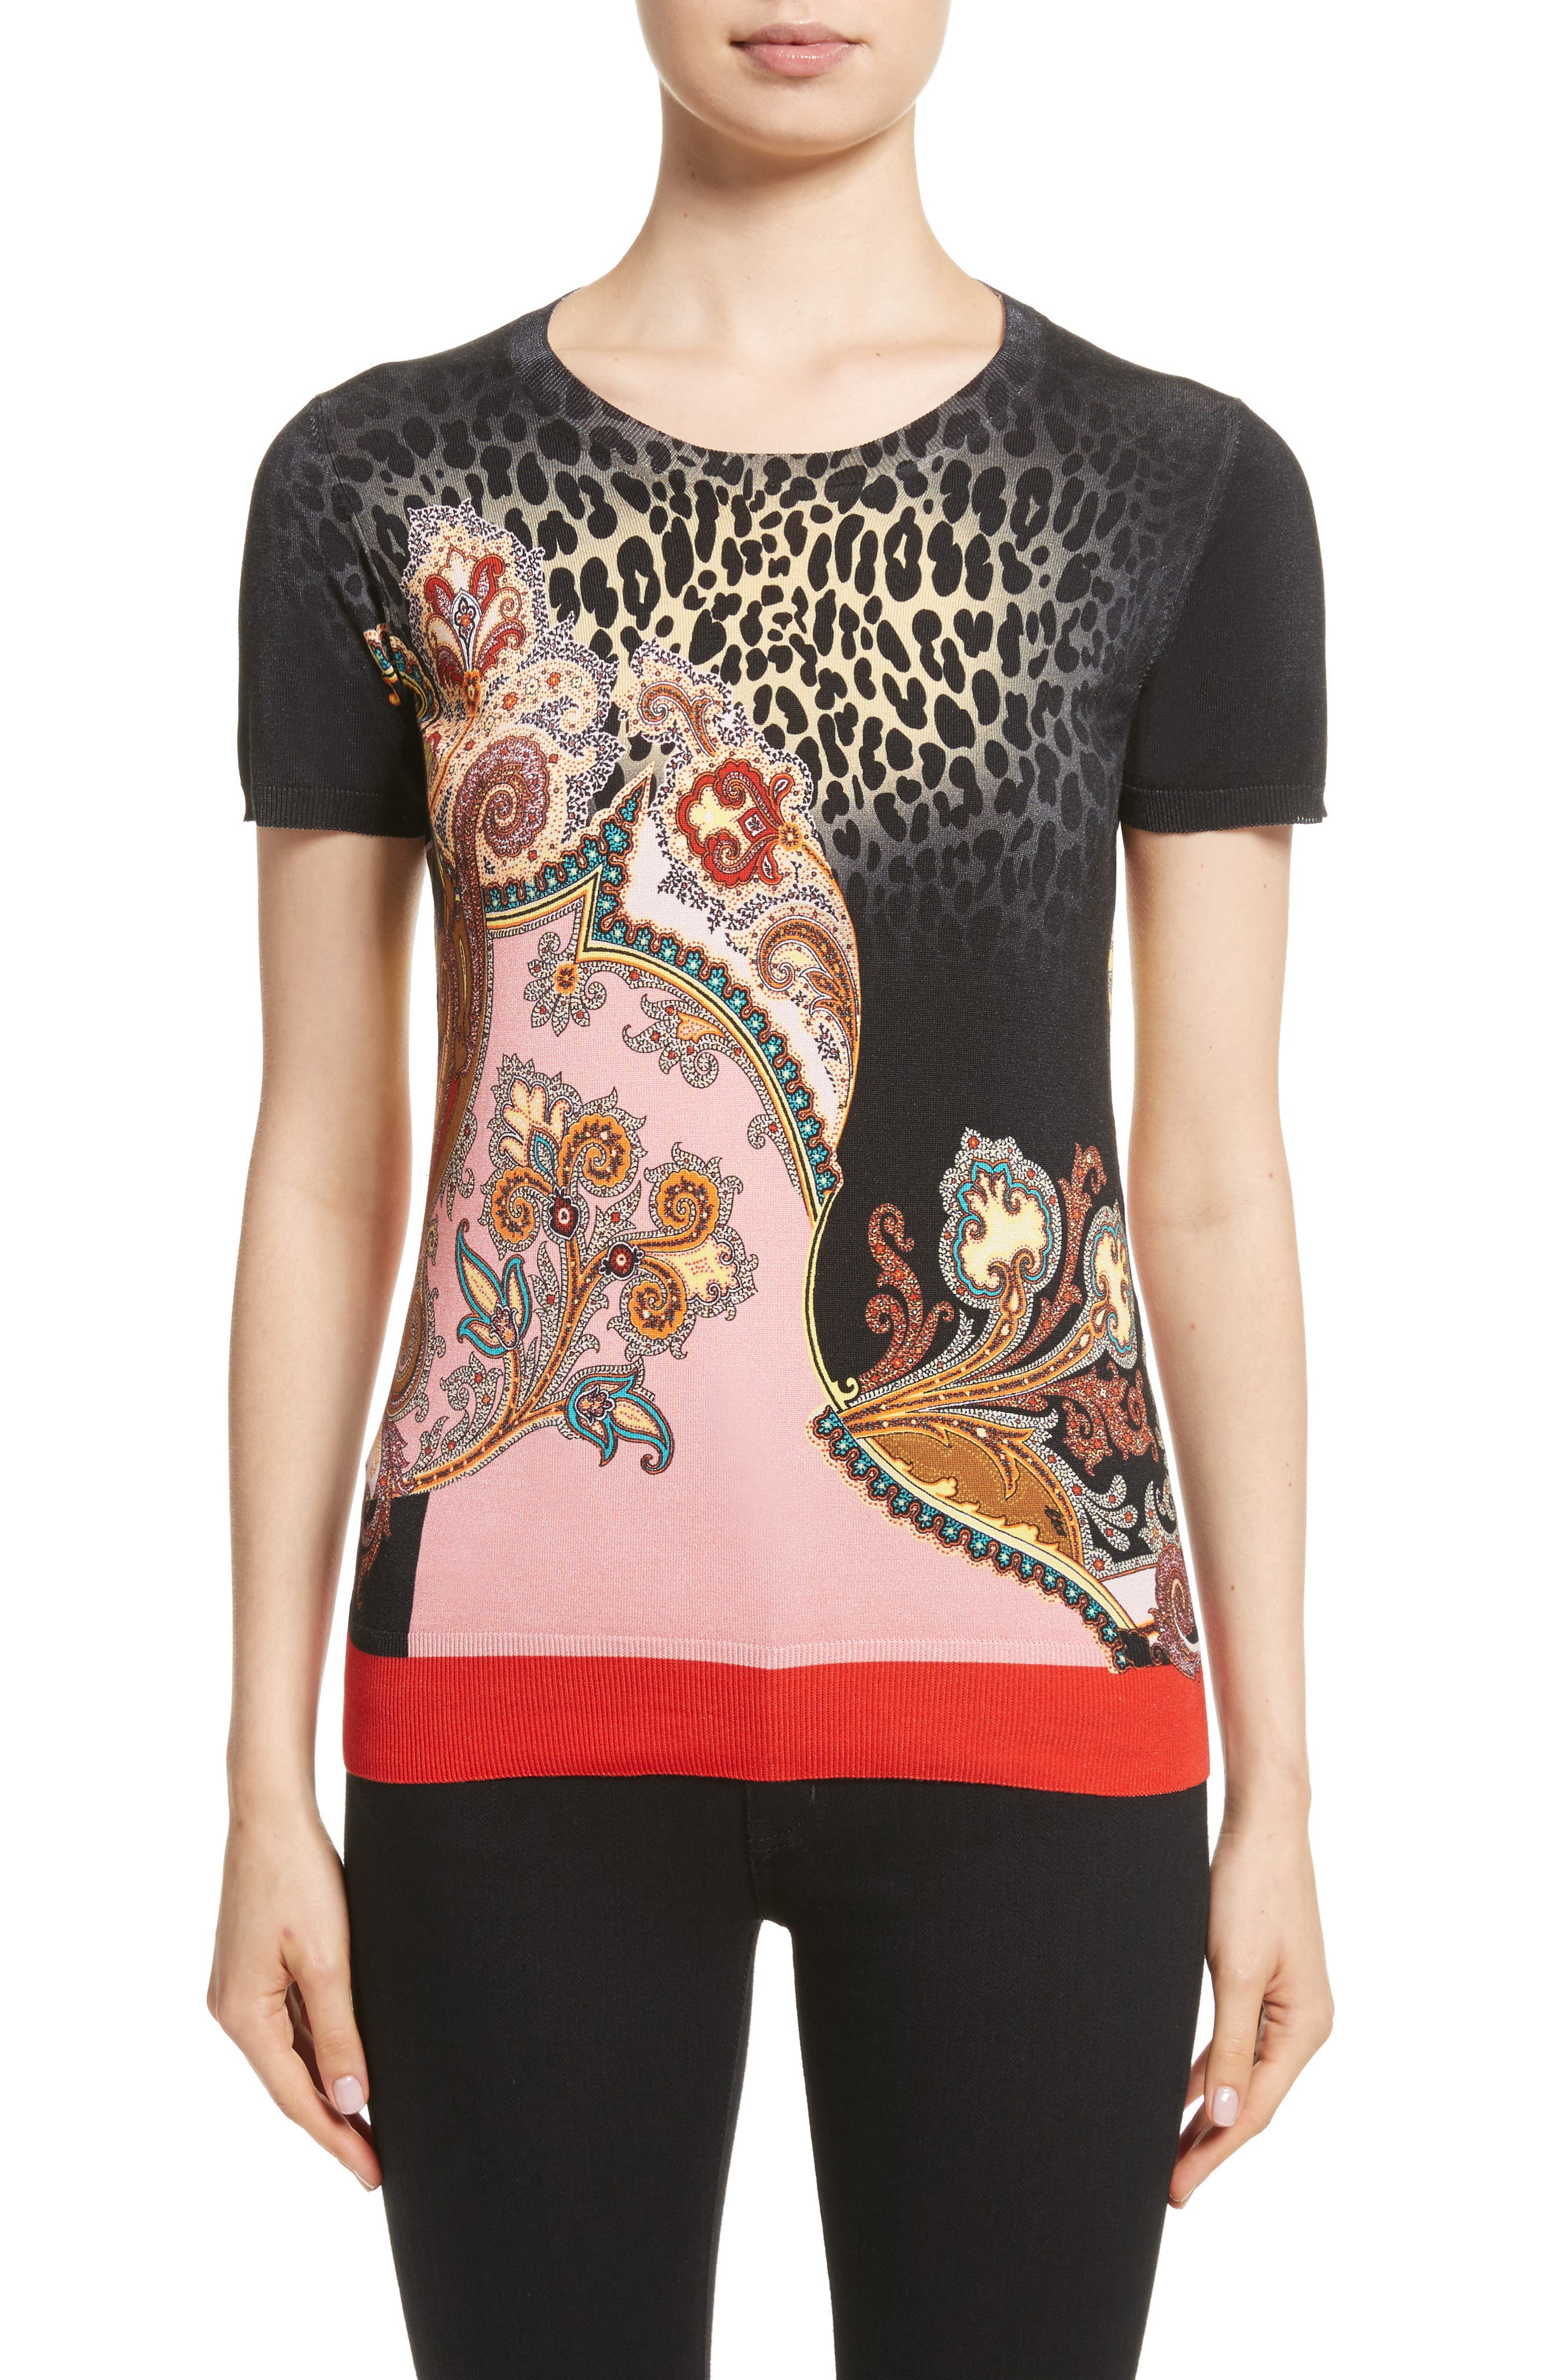 Etro Leopard Paisley Print Stretch Silk Sweater